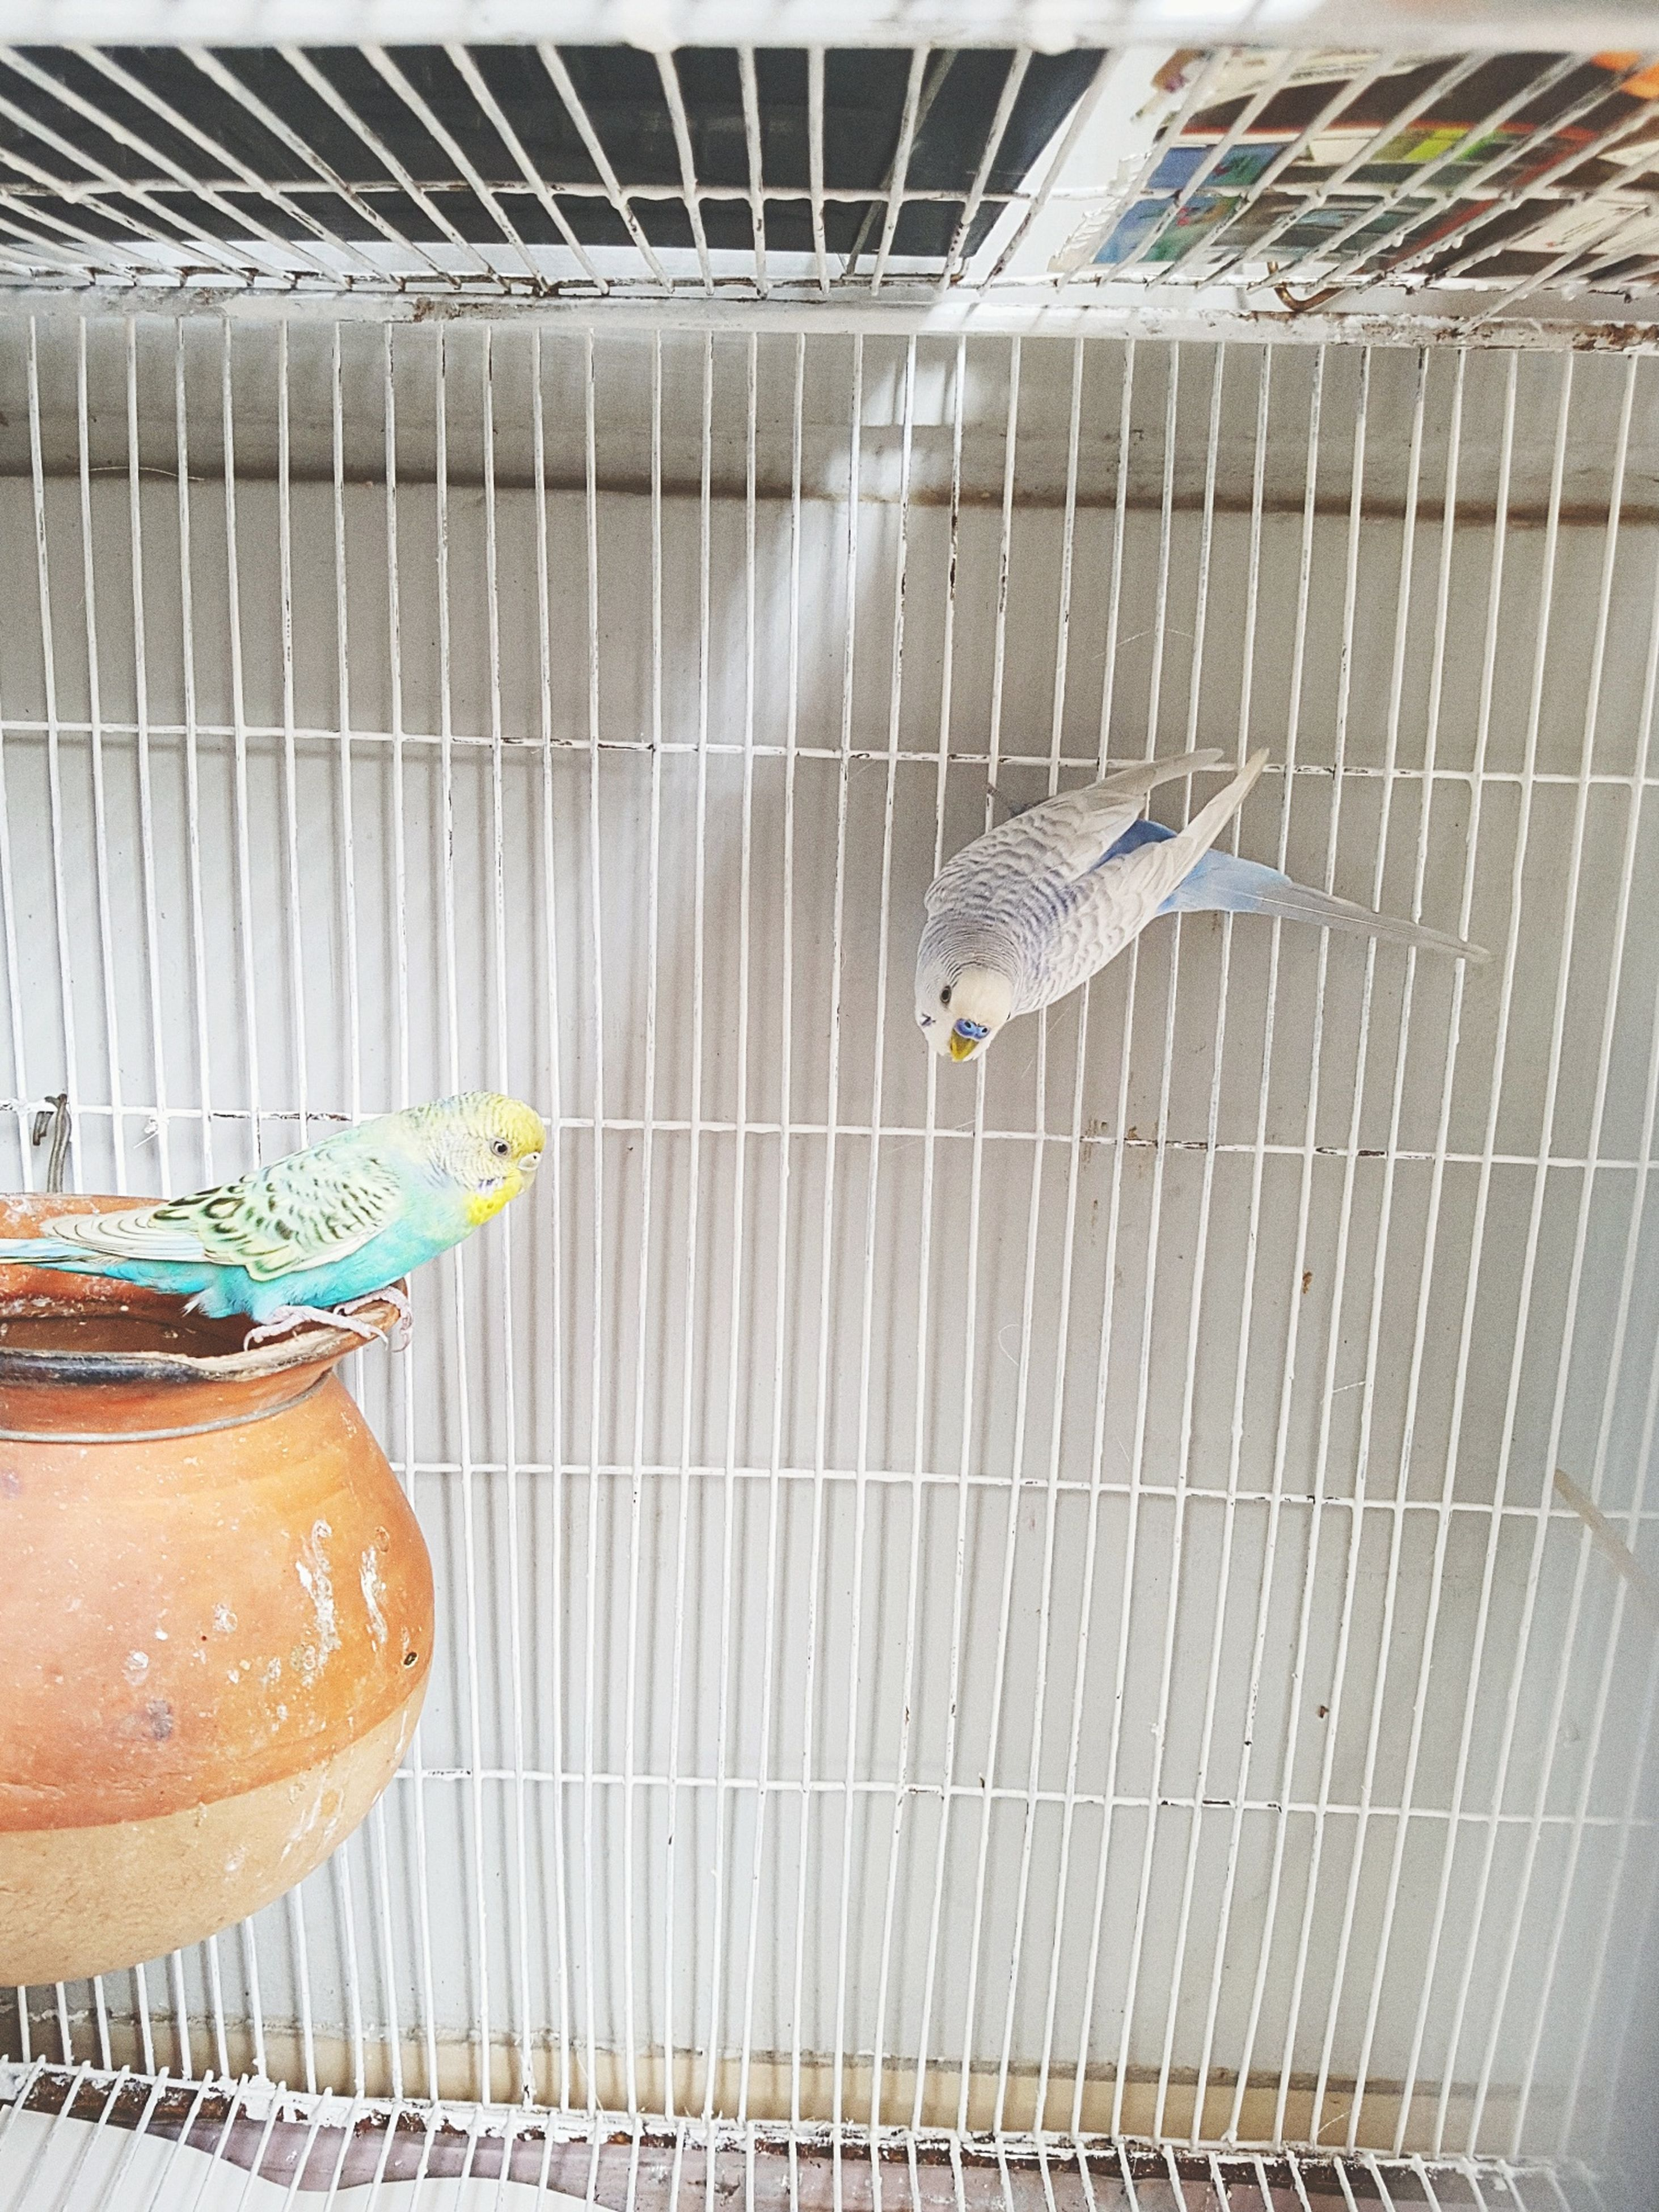 bird, animal themes, no people, birdcage, cage, animal wildlife, animals in the wild, day, perching, indoors, nature, close-up